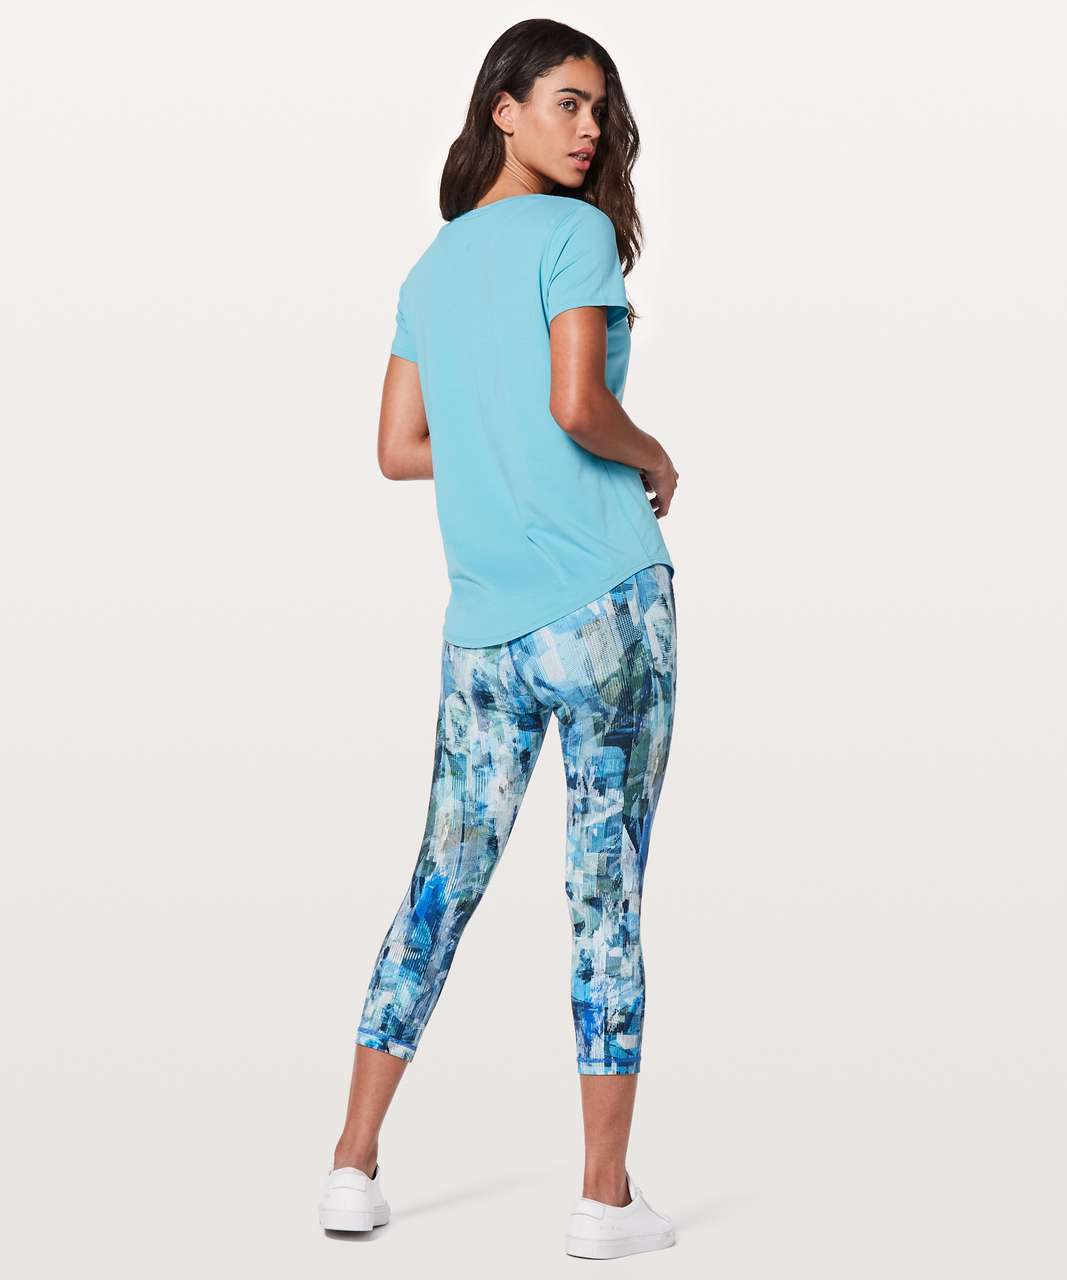 Lululemon Love Crew III - Eton Blue